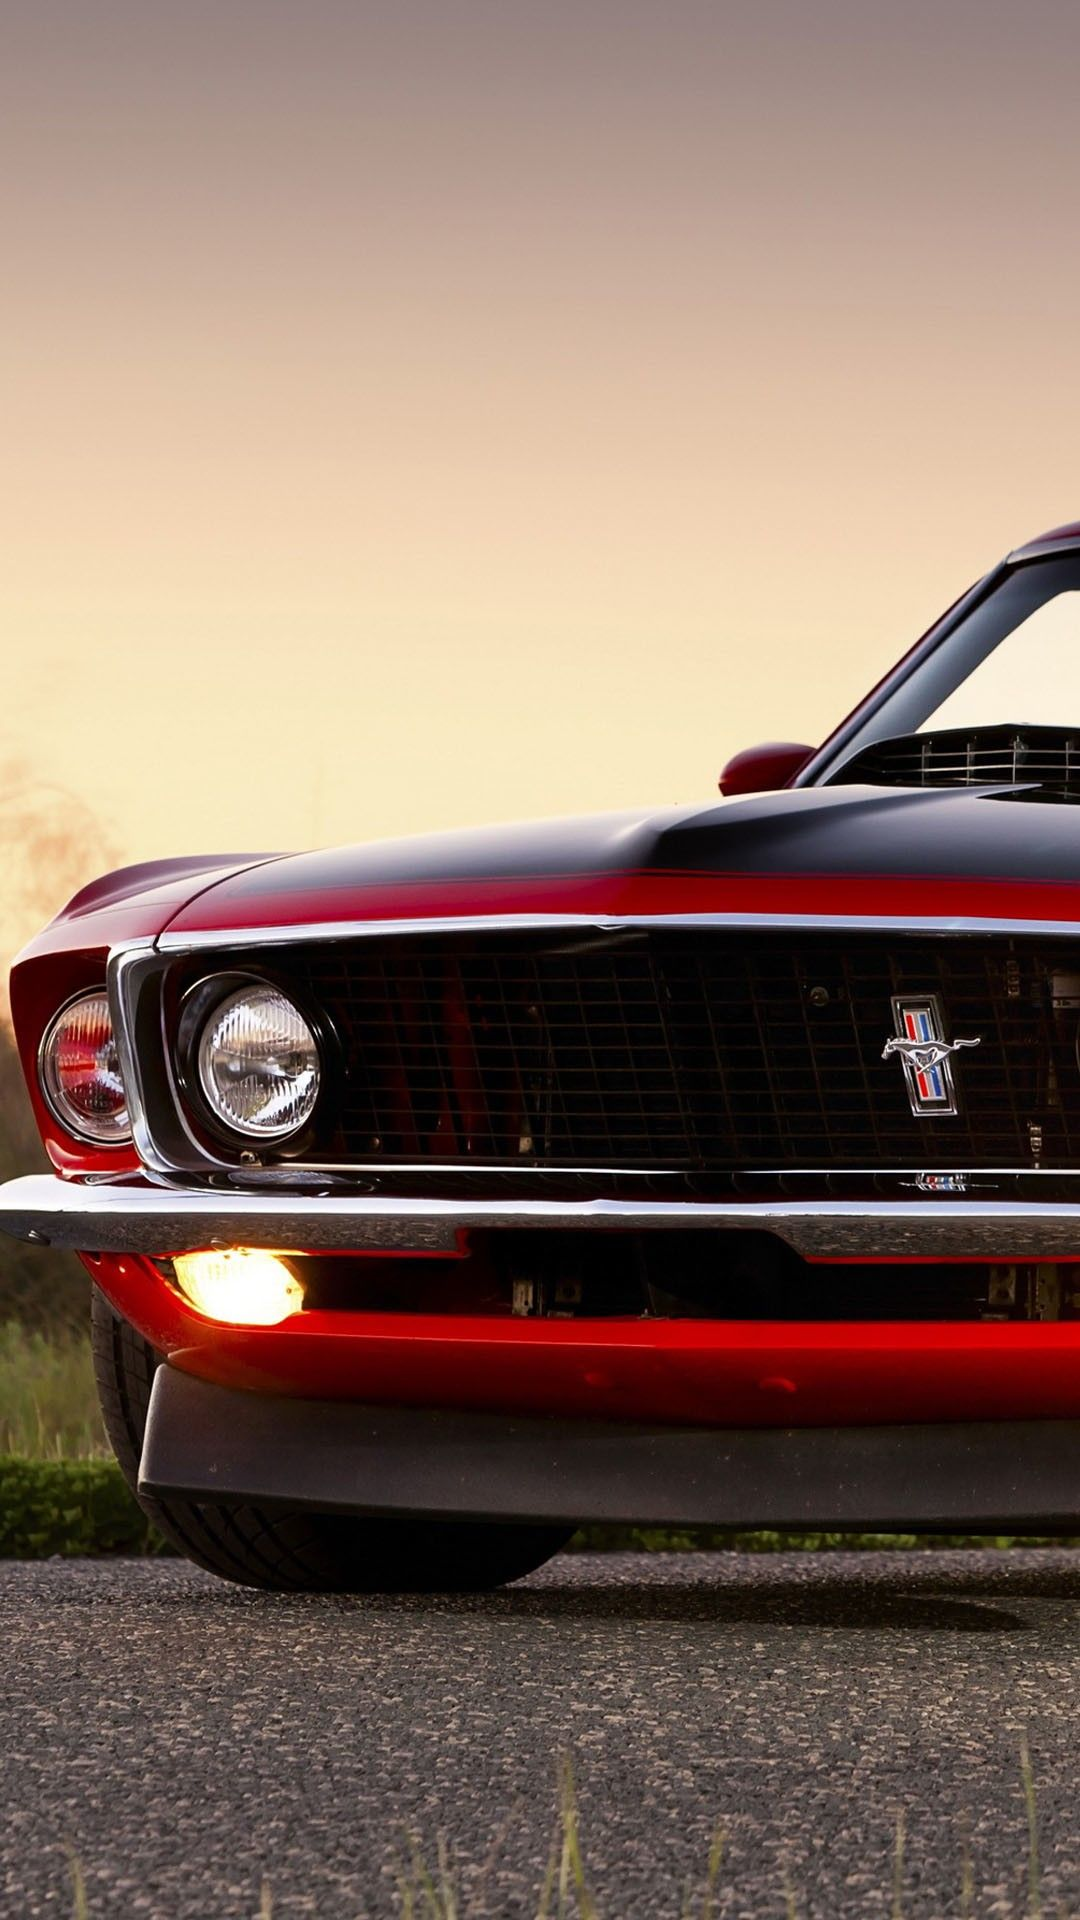 Cars Iphone Wallpaper Android Wallpaper Mustang Iphone